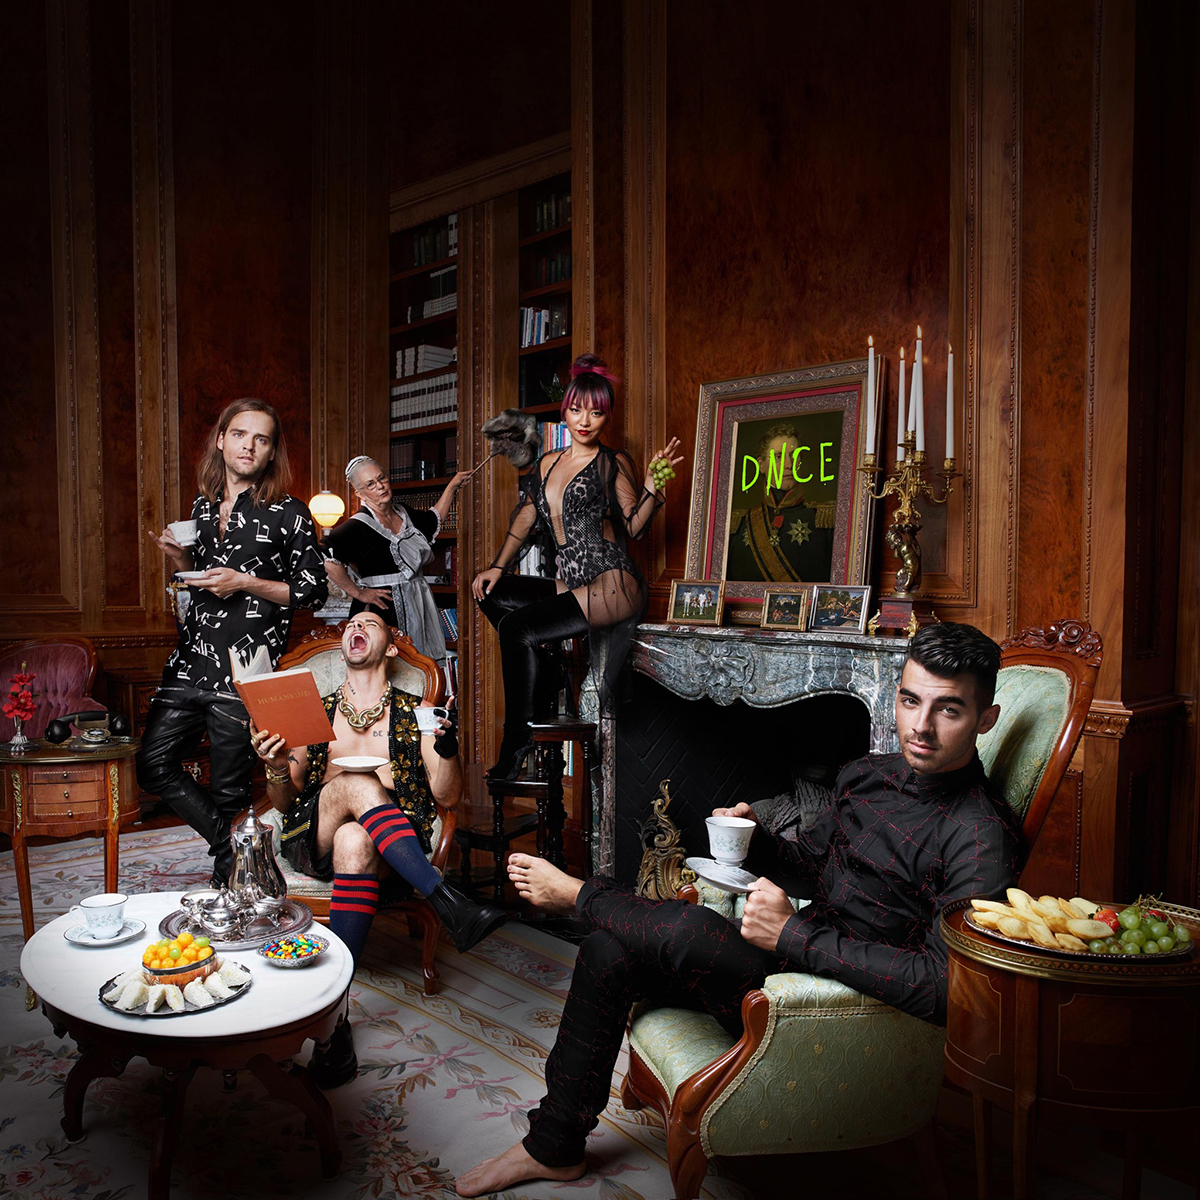 DNCE - Courtesy of Republic Records